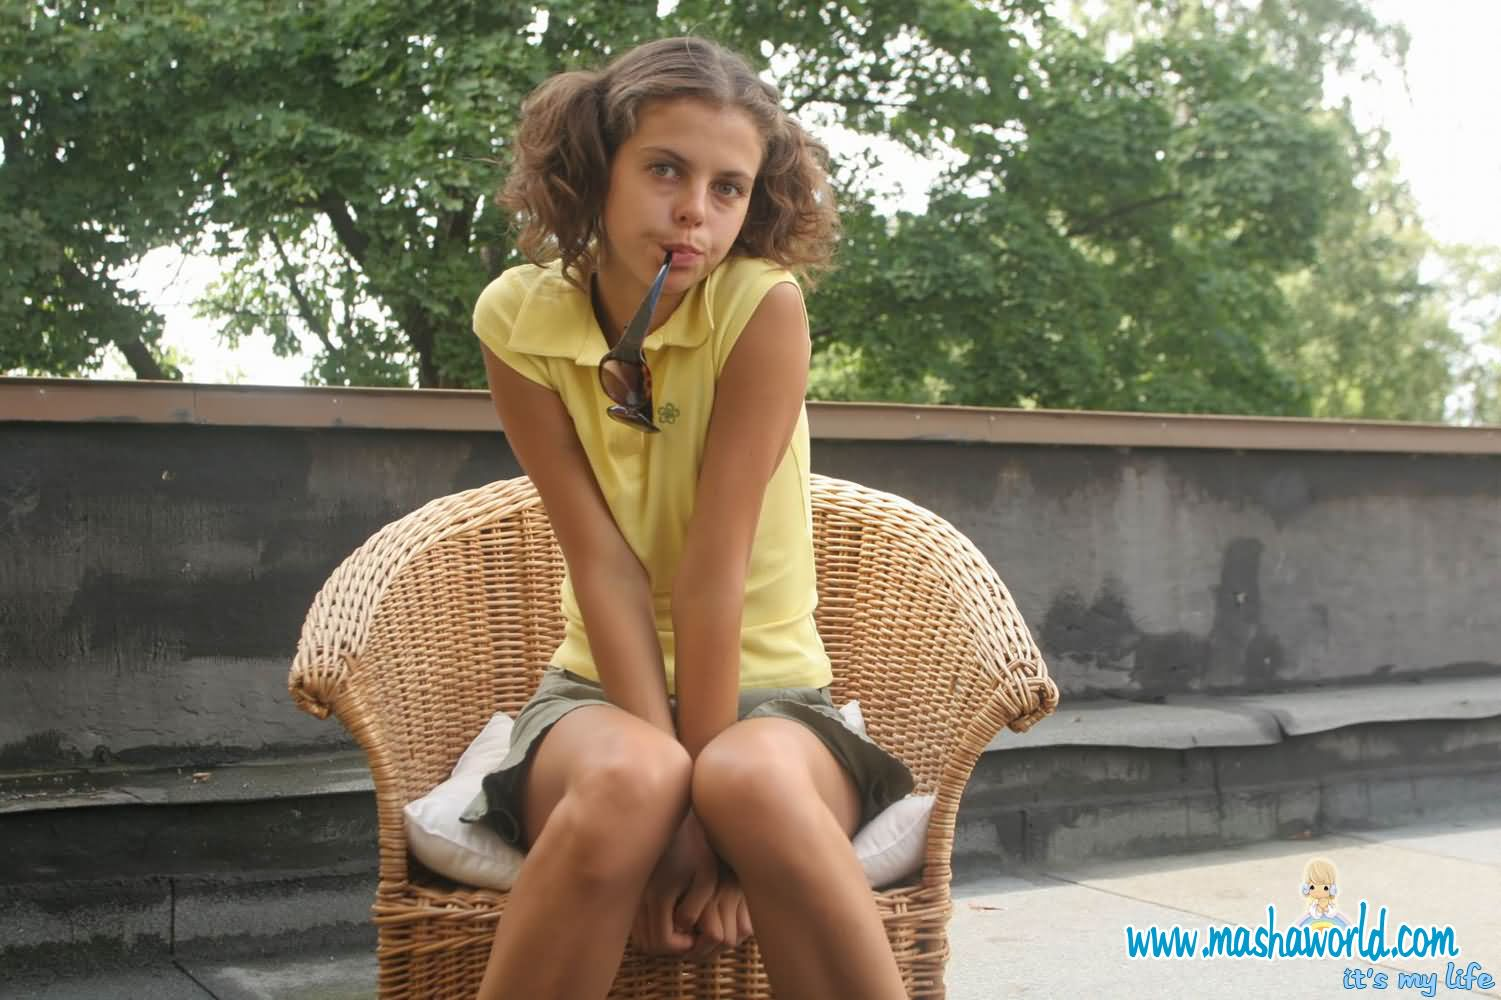 galleries photos shaved pussy perfect